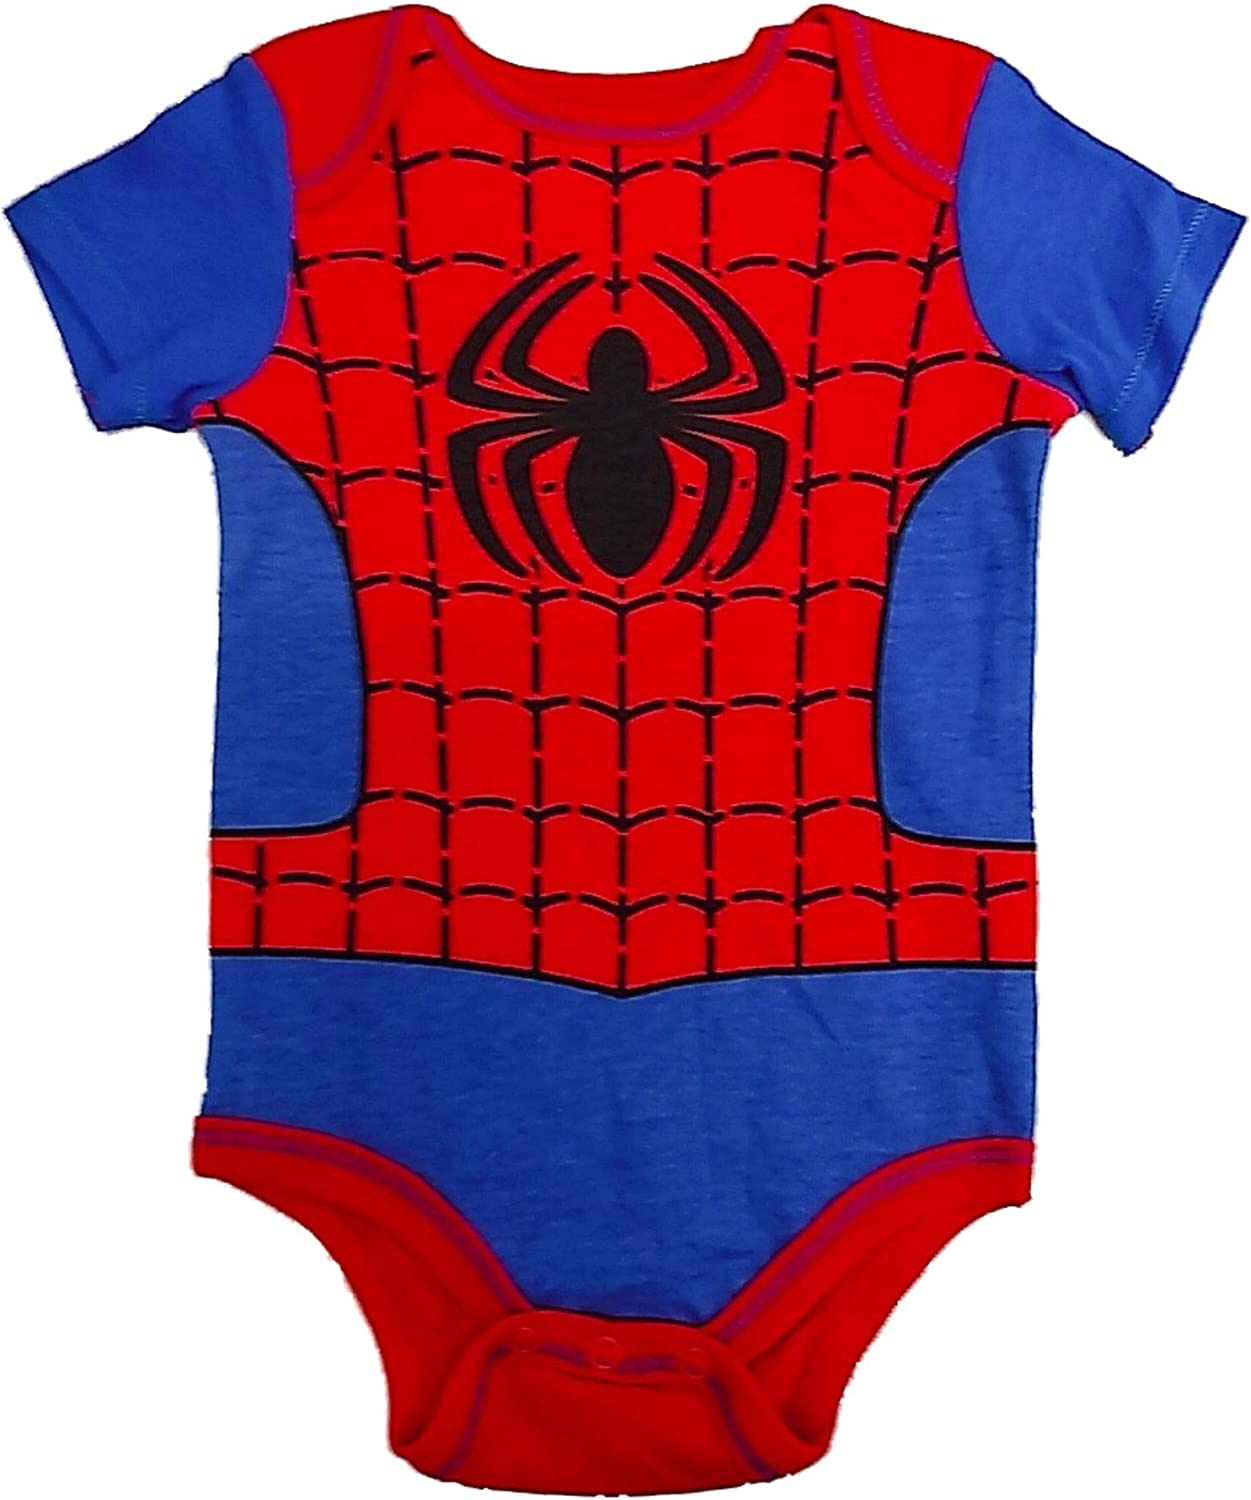 2 Pack Baby Boys Batman Bodysuit 3-6 Months Creeper Outfit Superhero One Piece